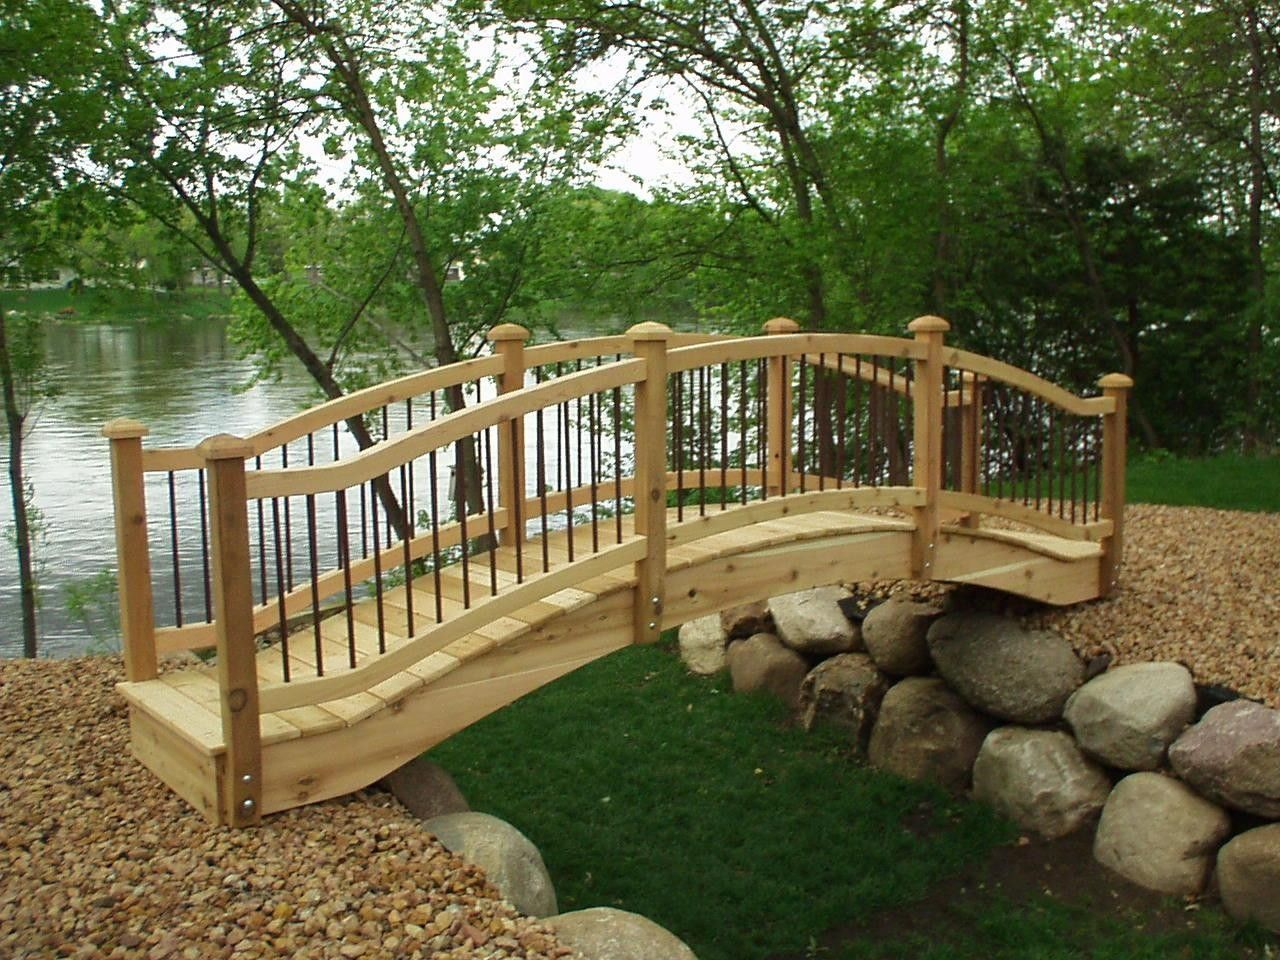 cedar bridge shop handcrafted and custom made wooden bridges in just about any width or length you need